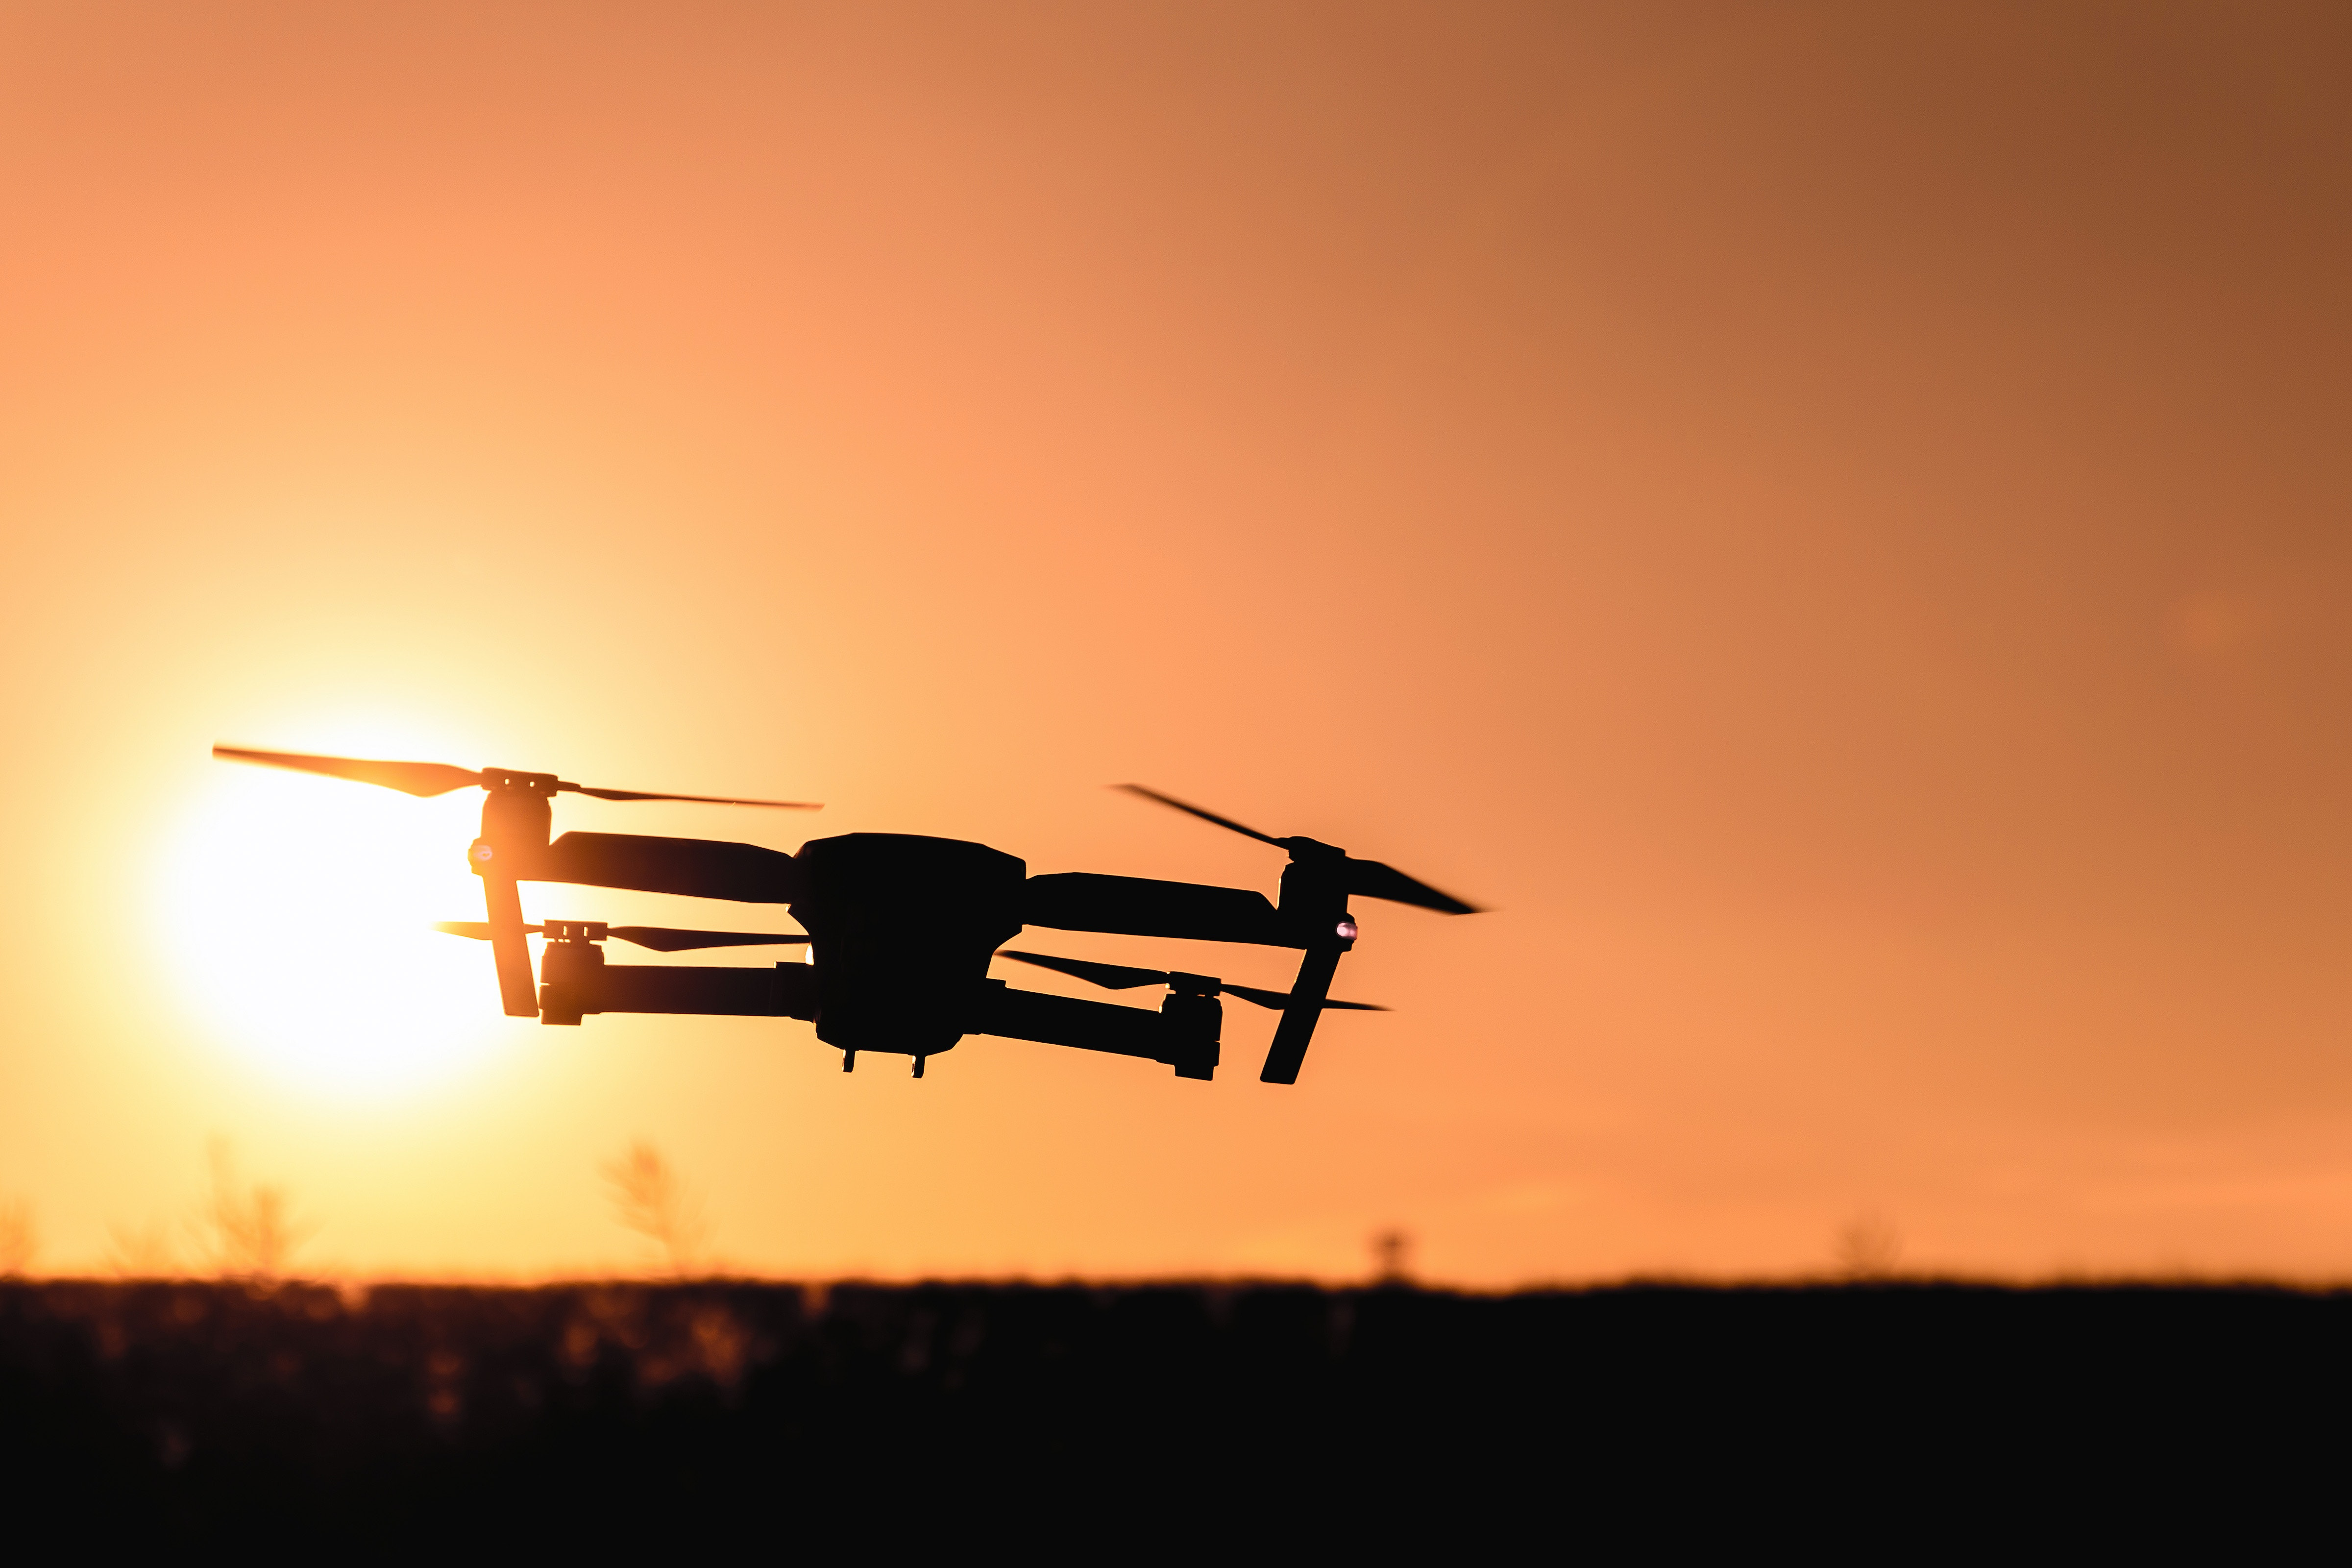 Drone 5022 in the sunset 56245